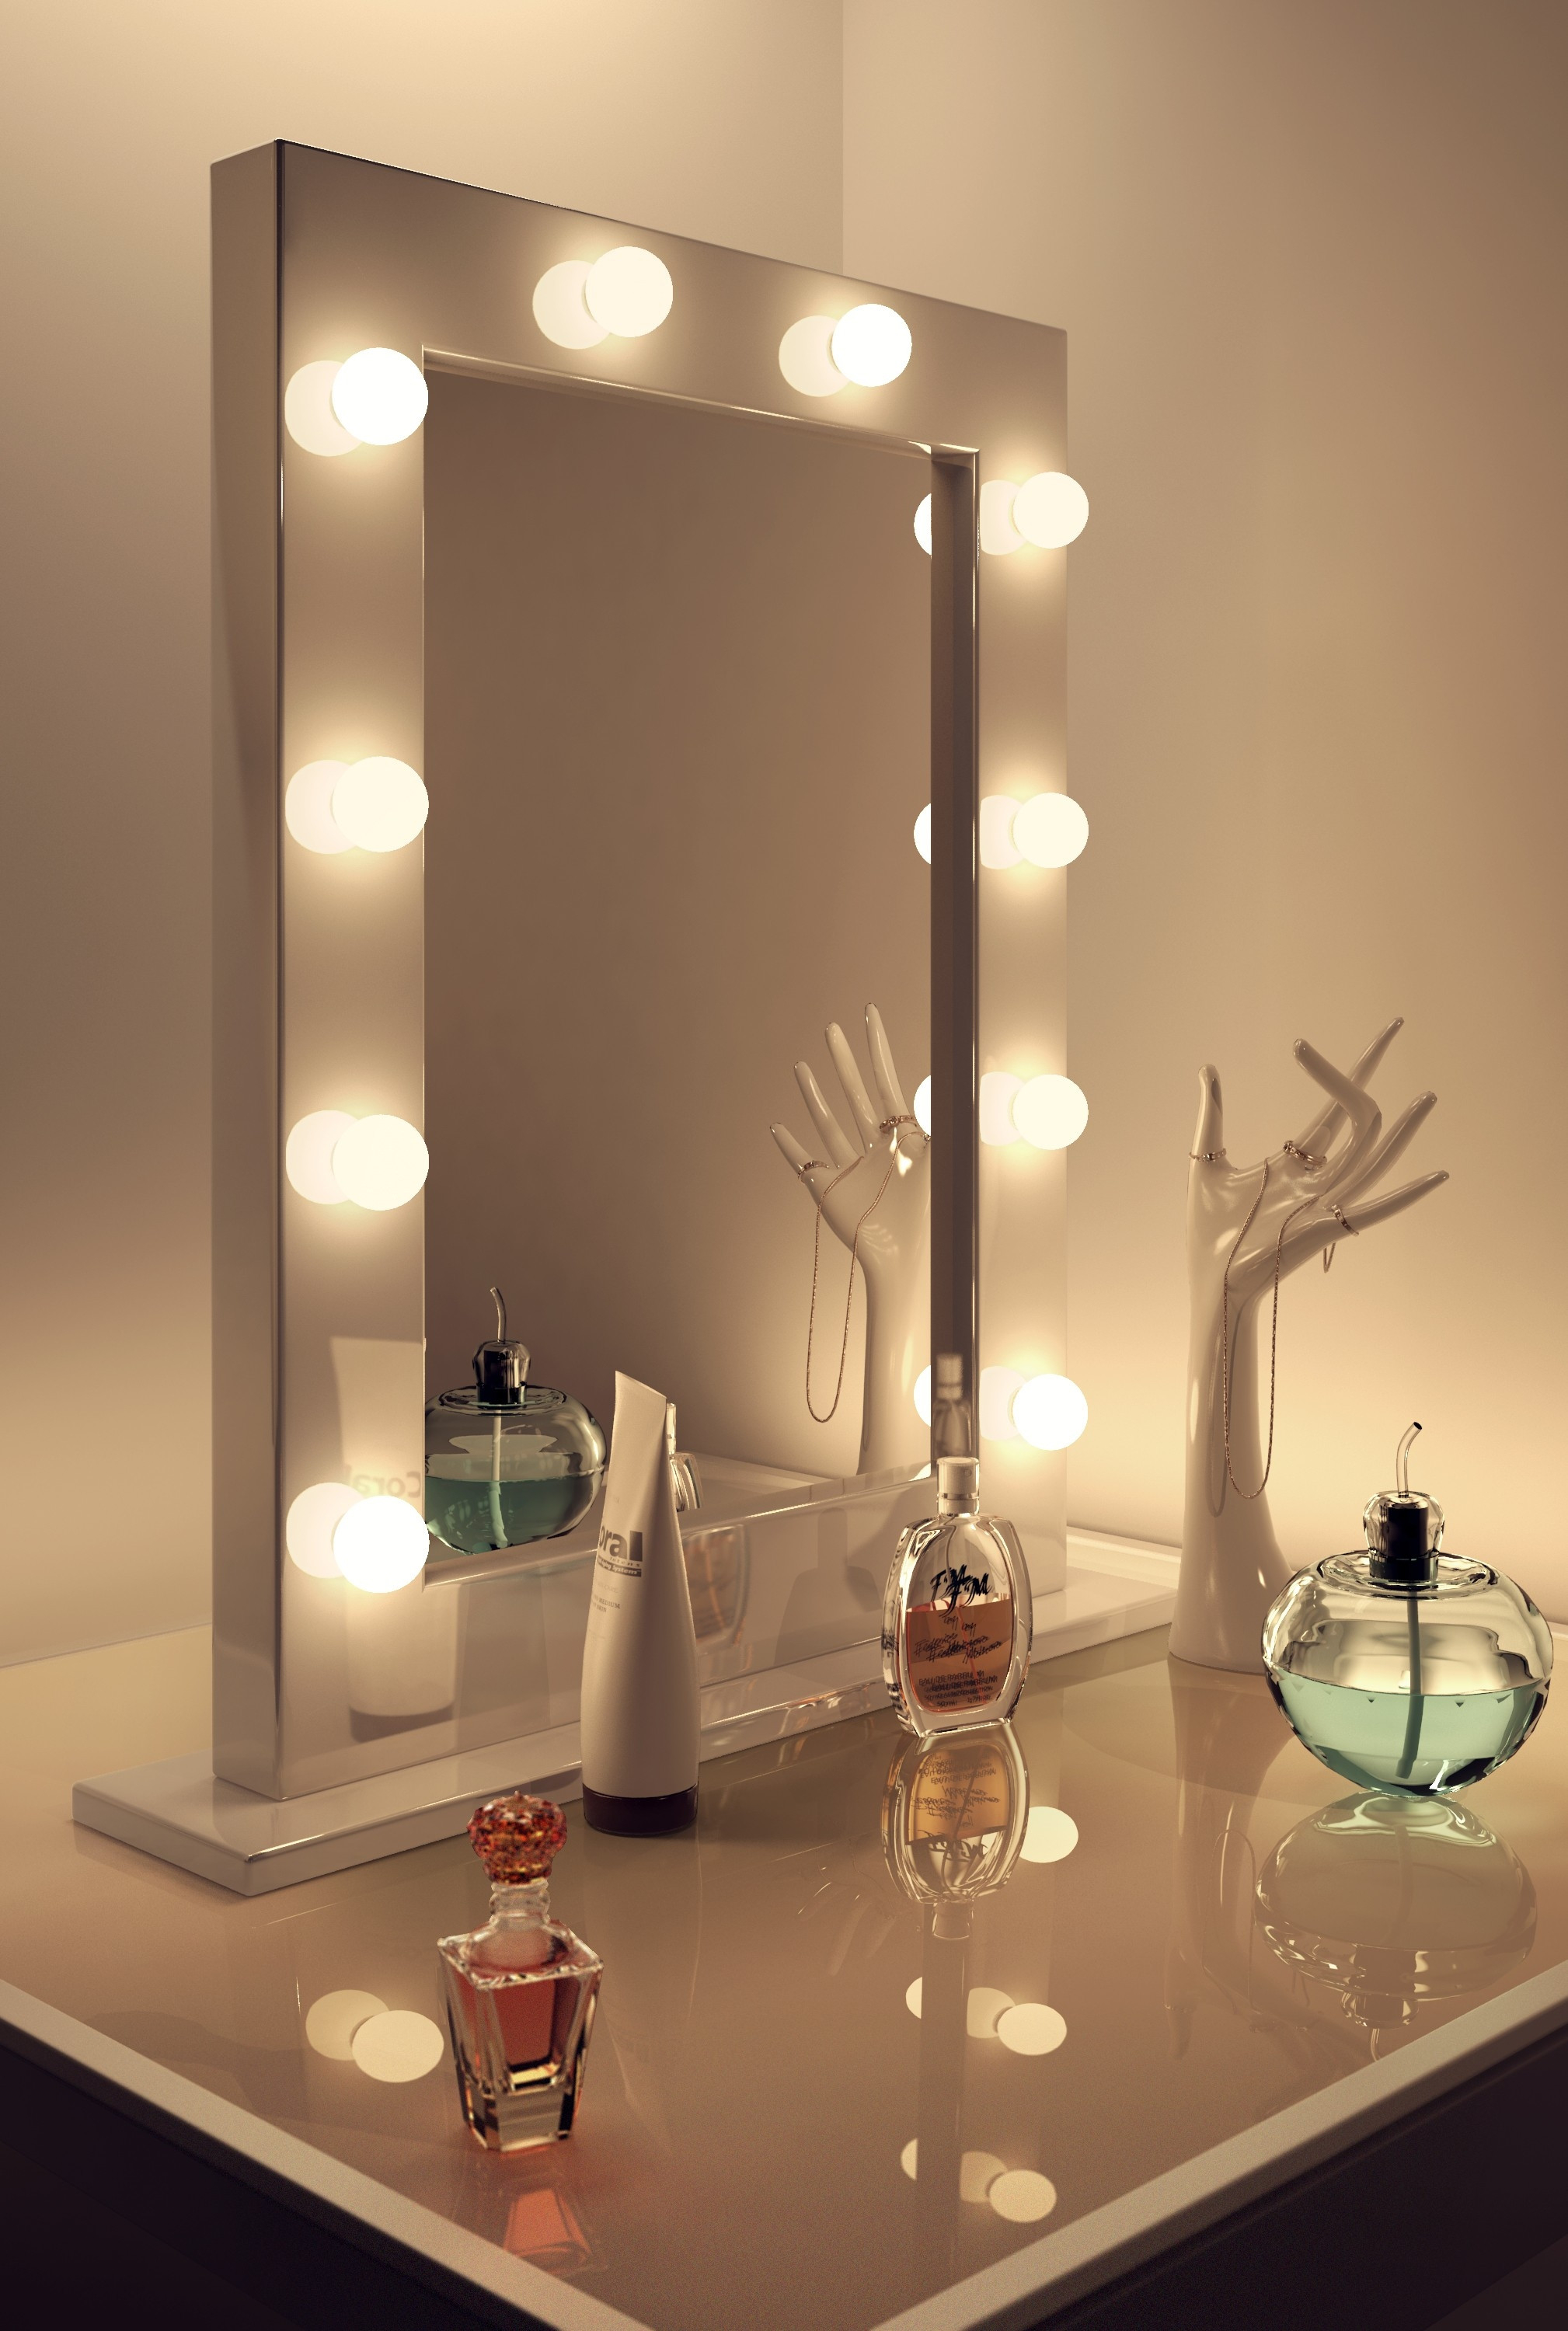 Cool Lighting : Bathroom Vanity Light Bulbs Lighting Espan Us Edison Bulb with Review Bathroom Vanity Light Bulbs